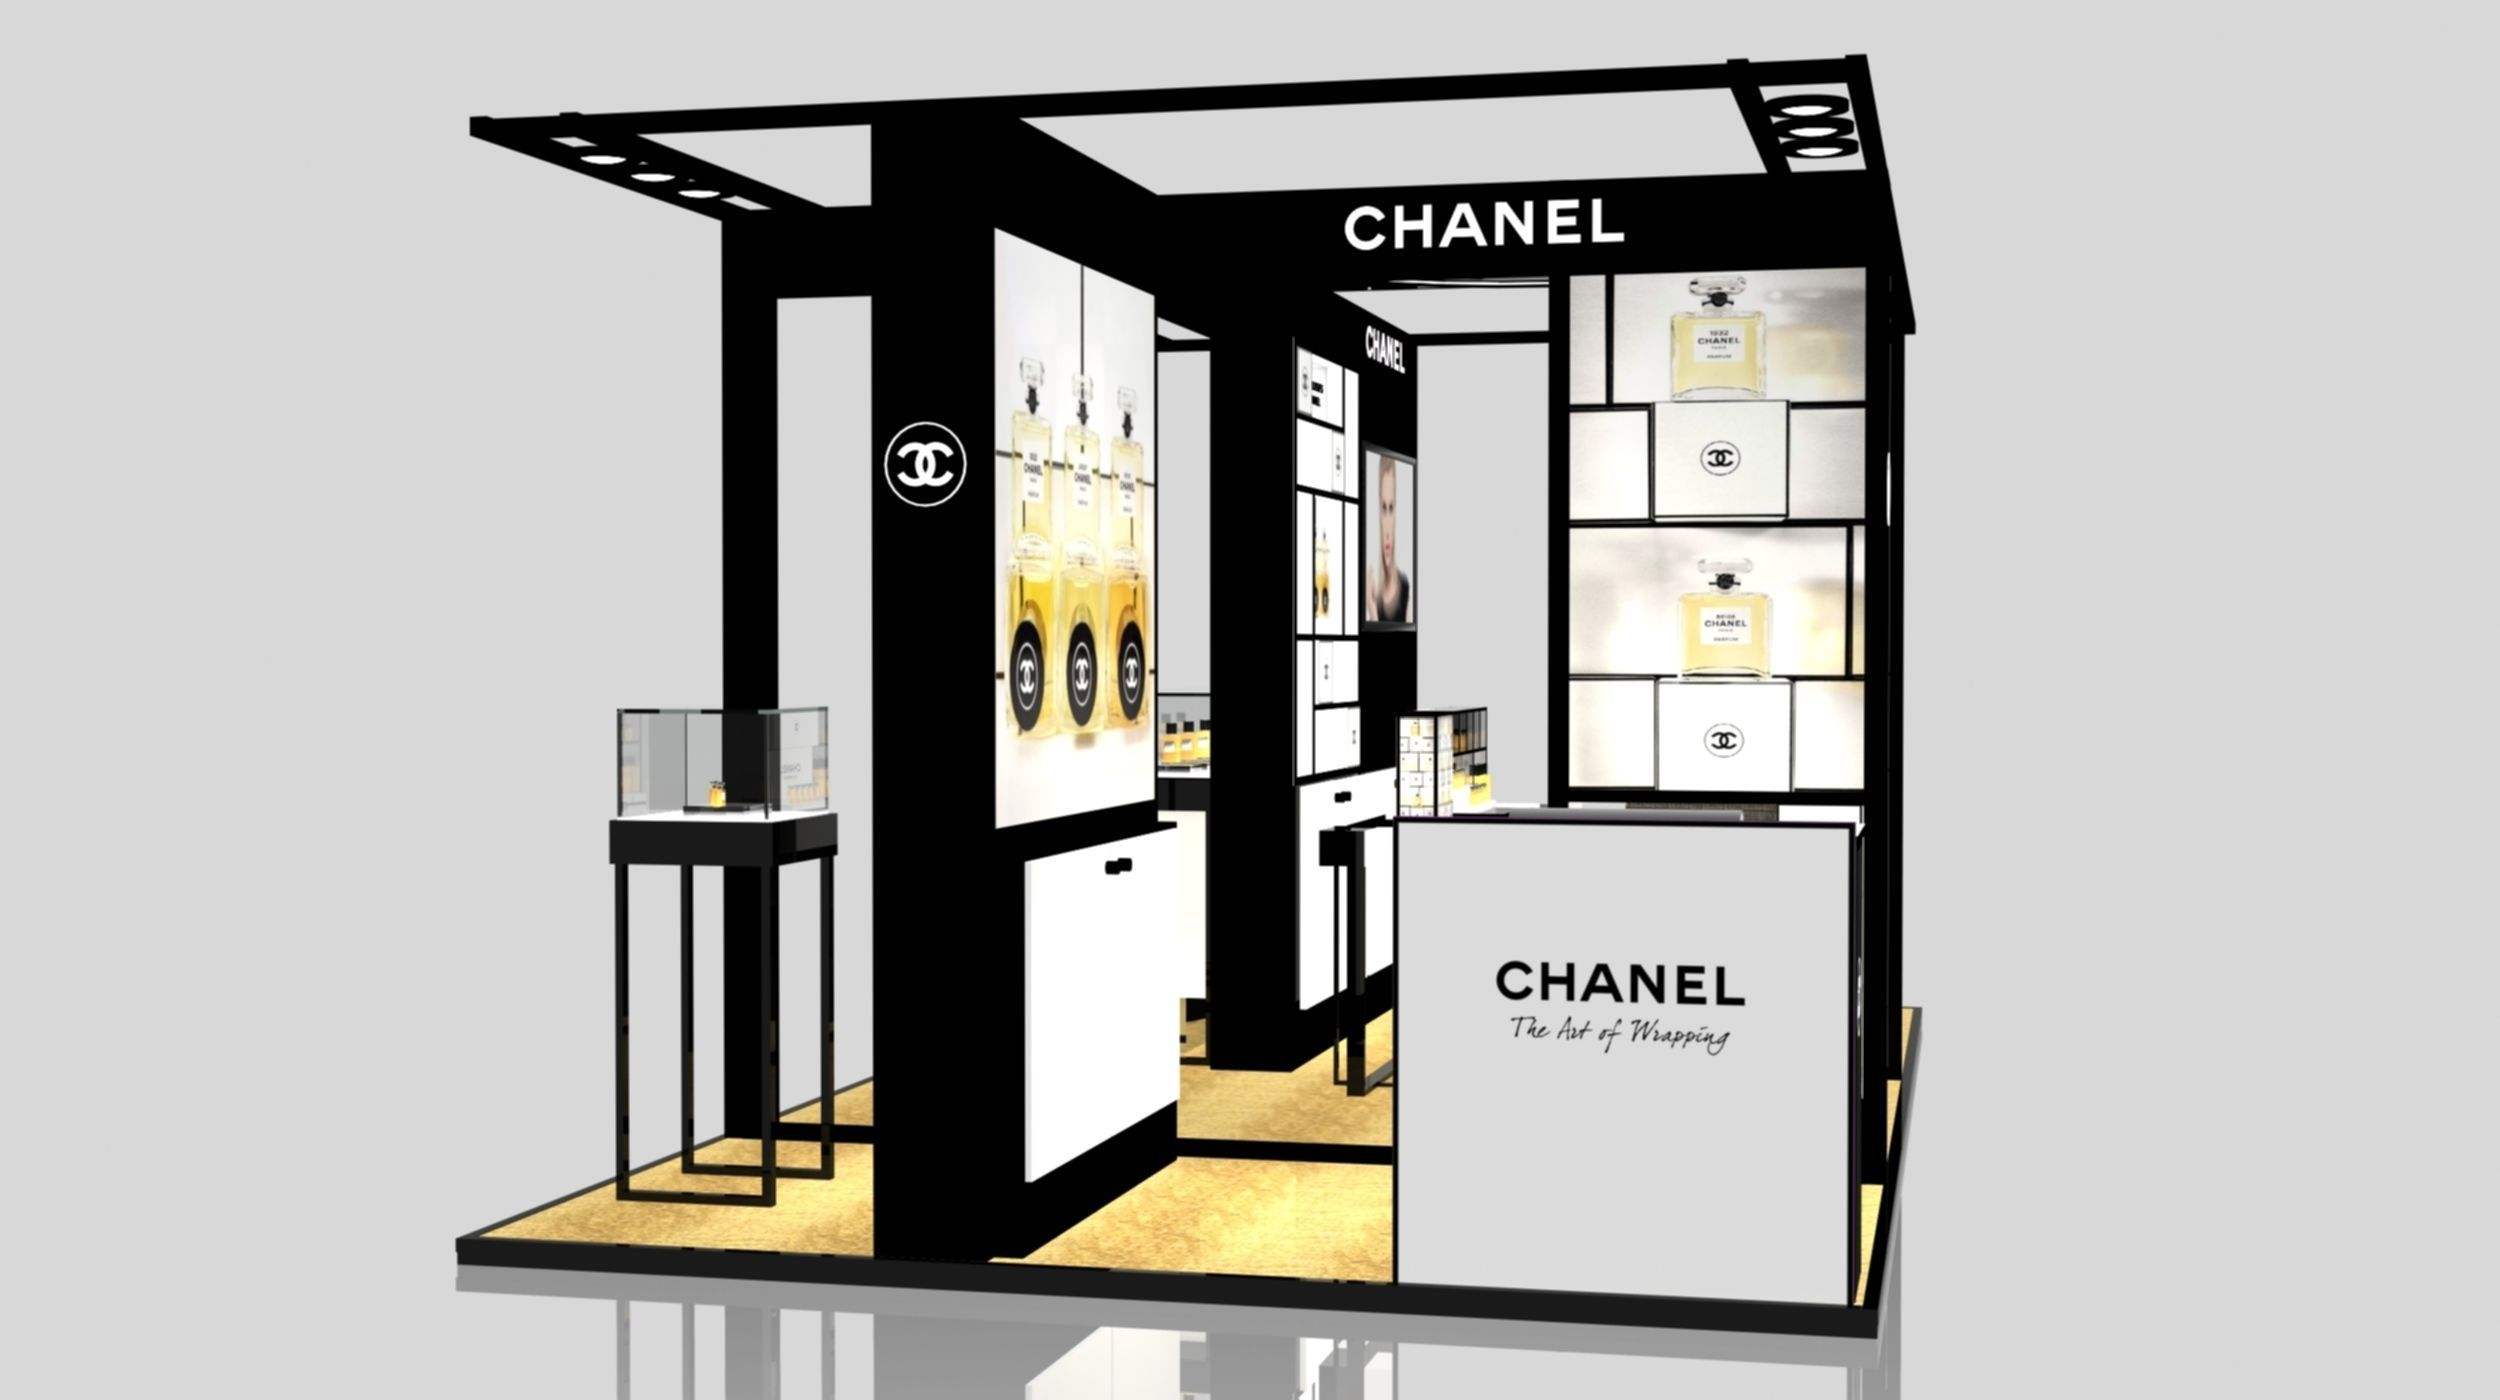 Exhibition Stand Sketchup : Exhibition stand of chanel in gum d model sldprt sldasm